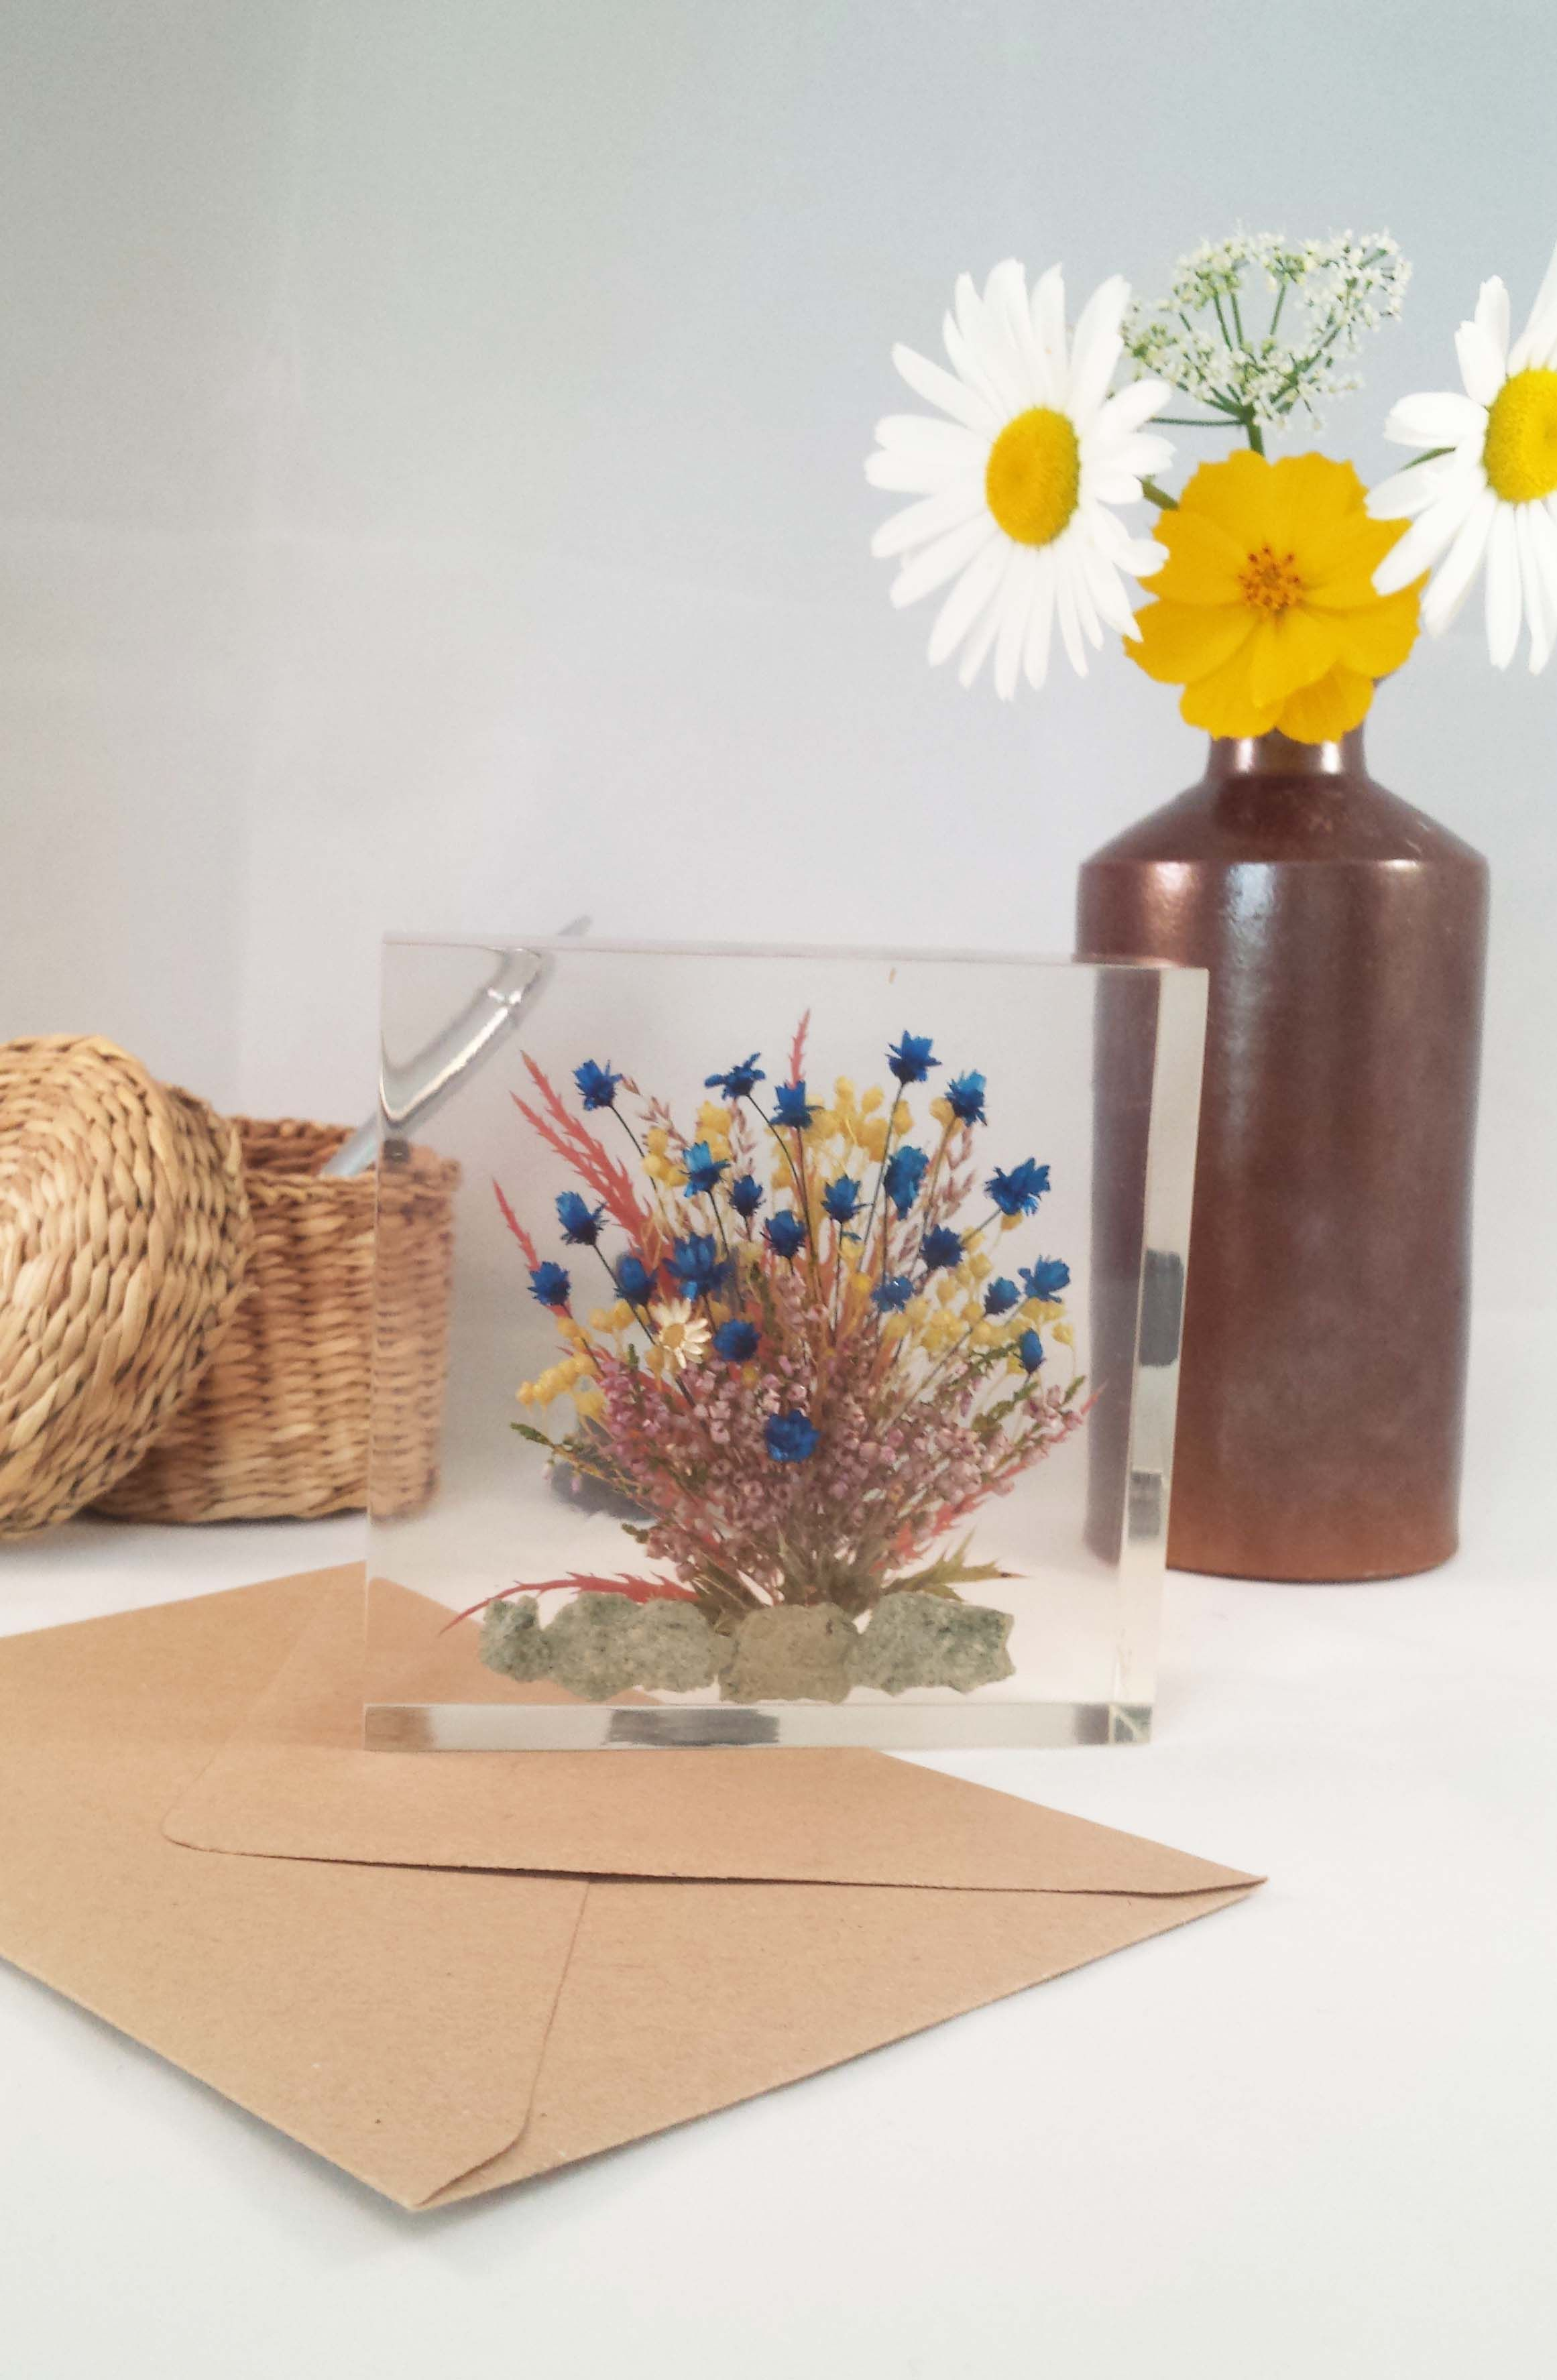 Floral inclusion mini yellow and blue everlasting flowers floral inclusion mini yellow and blue everlasting flowers izmirmasajfo